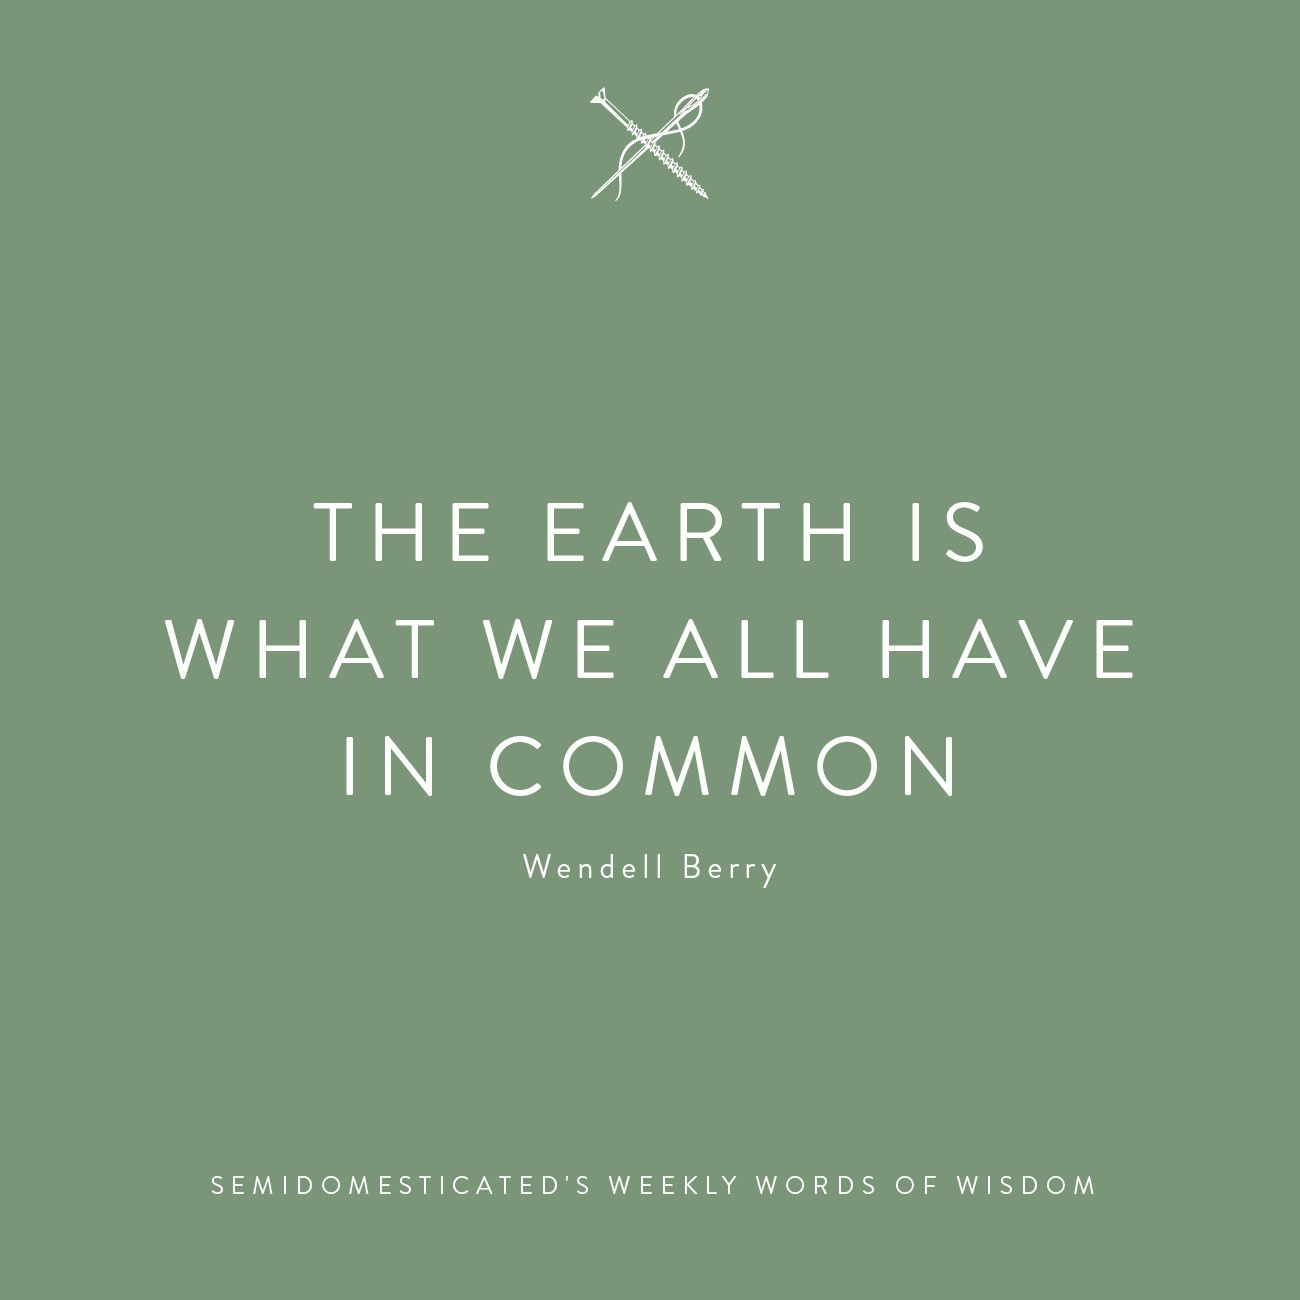 The earth is what we all have in common #semidomesticatedsweeklywordsofwisdom #wordsofwisdom #wordstoliveby #semidomesticated #mindfulliving #slowliving #slowlifestyle #essentialism